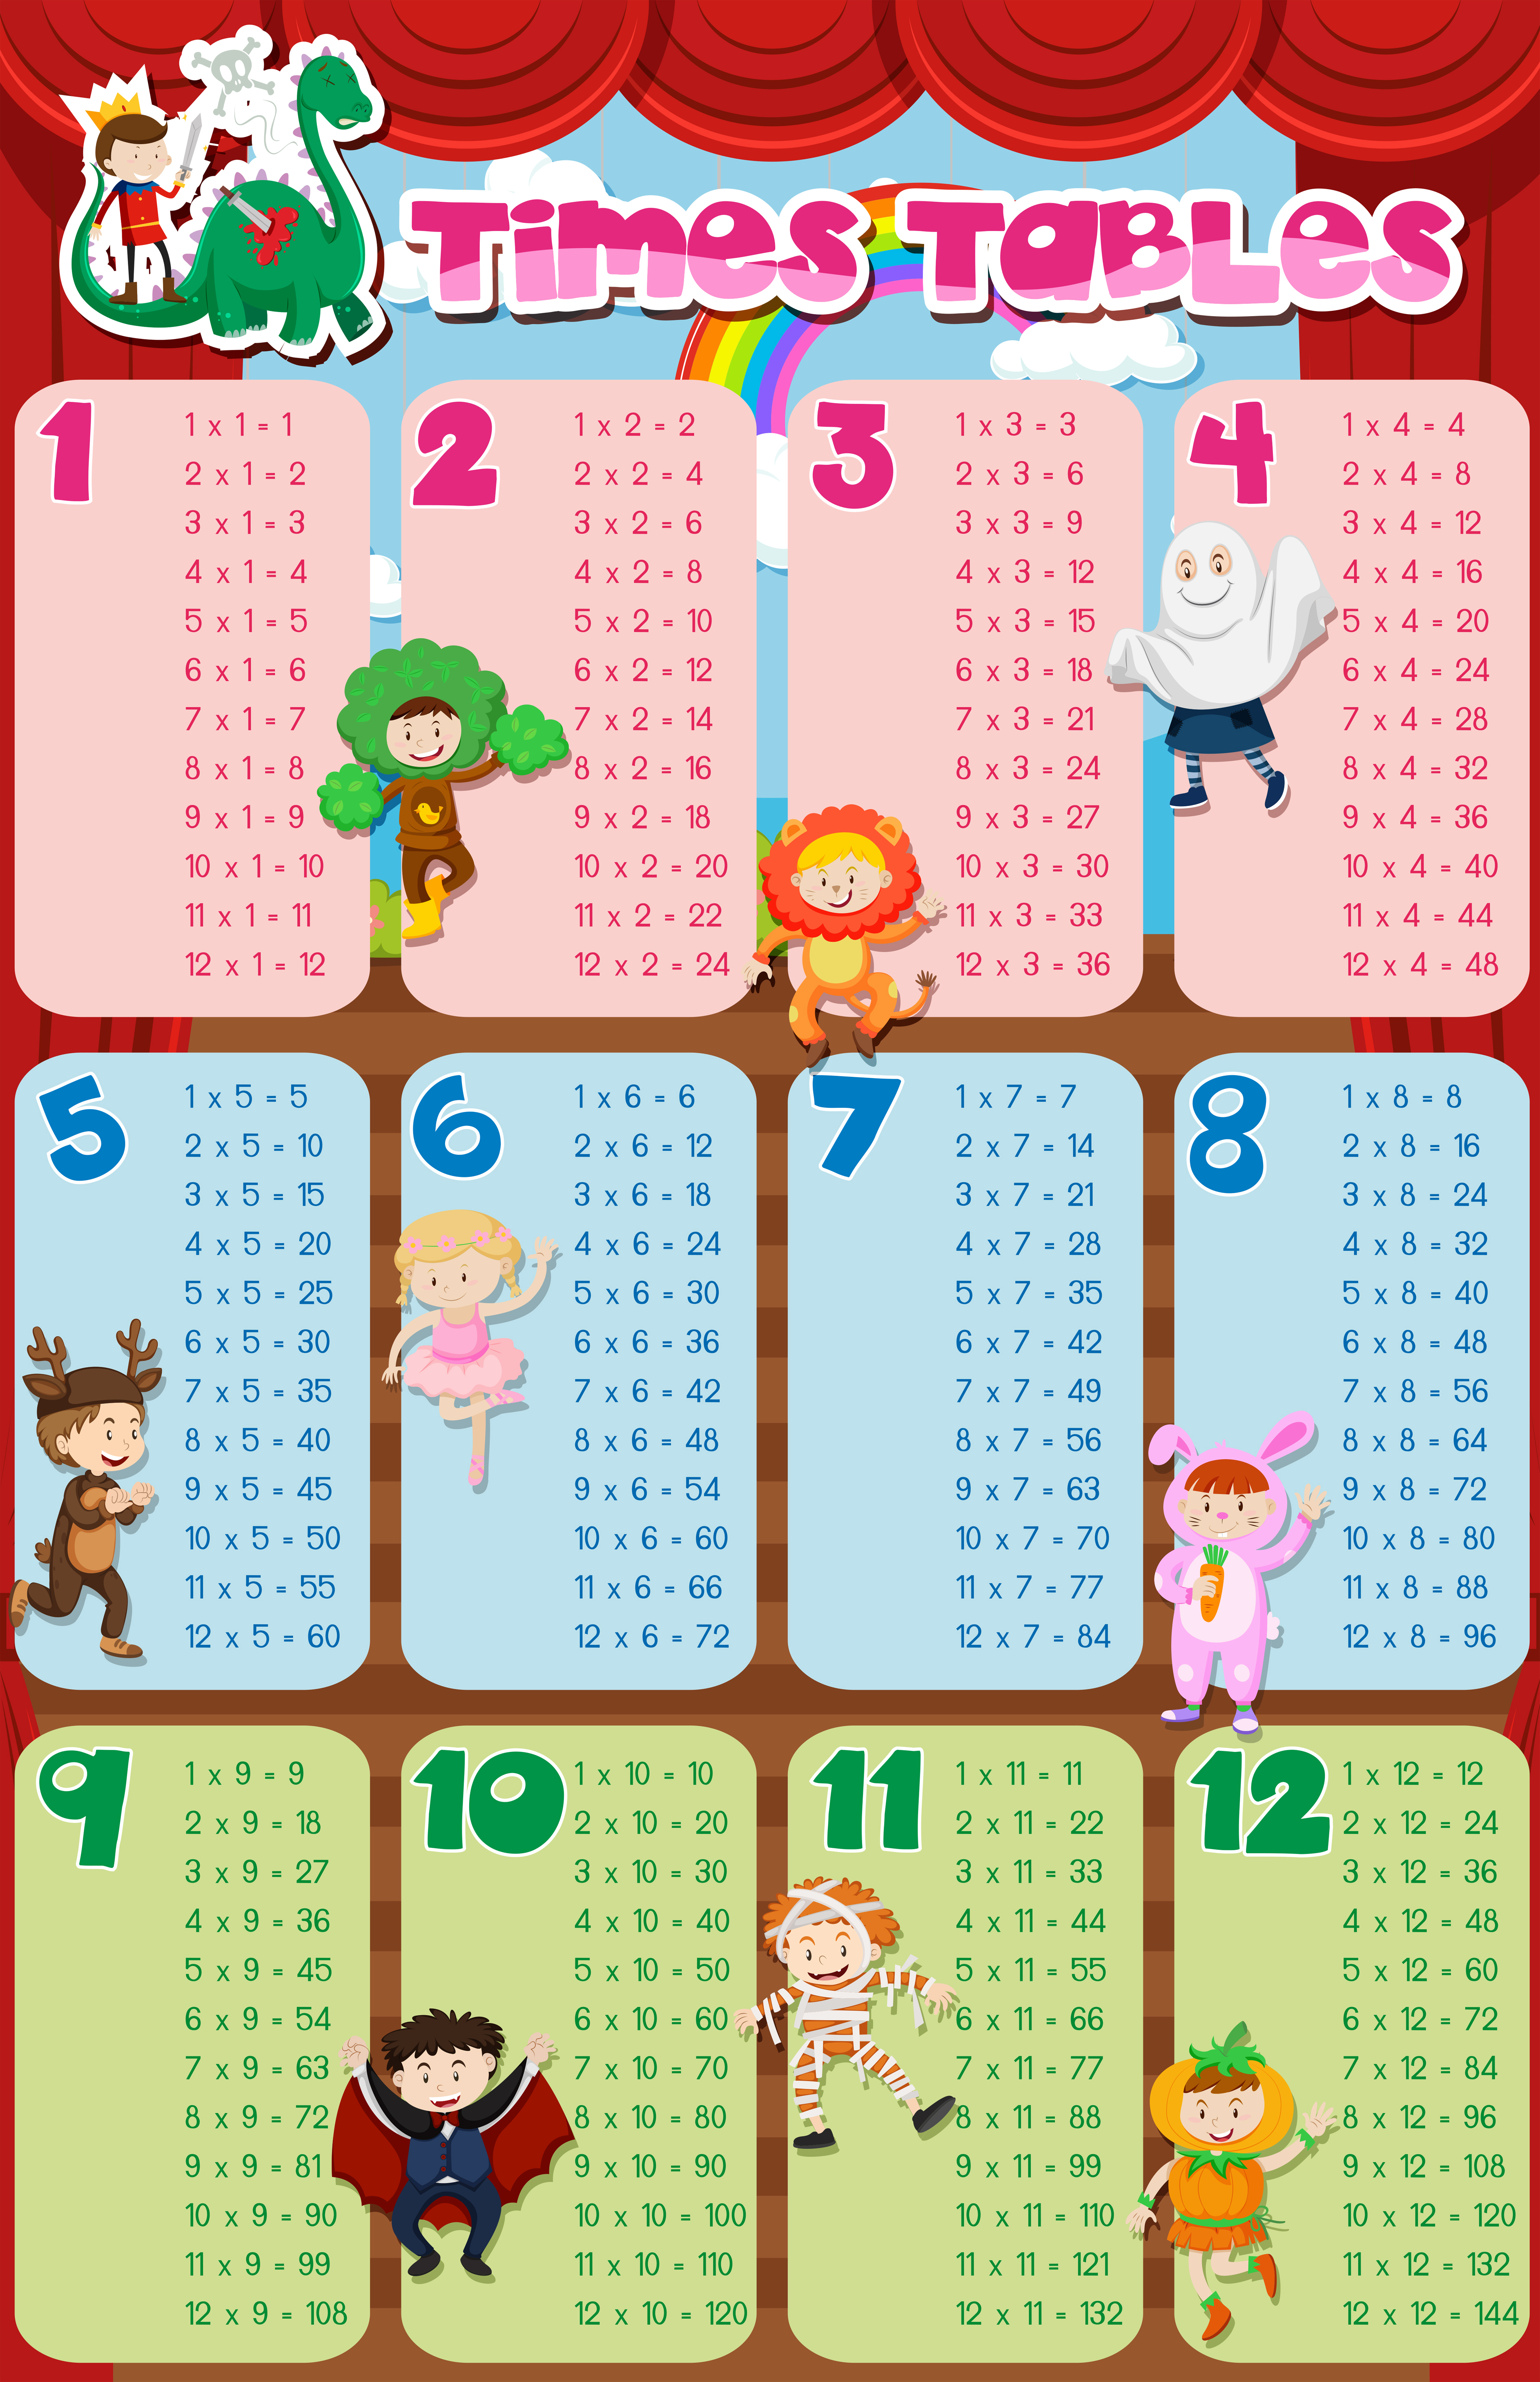 times tables chart with kids in costume in background